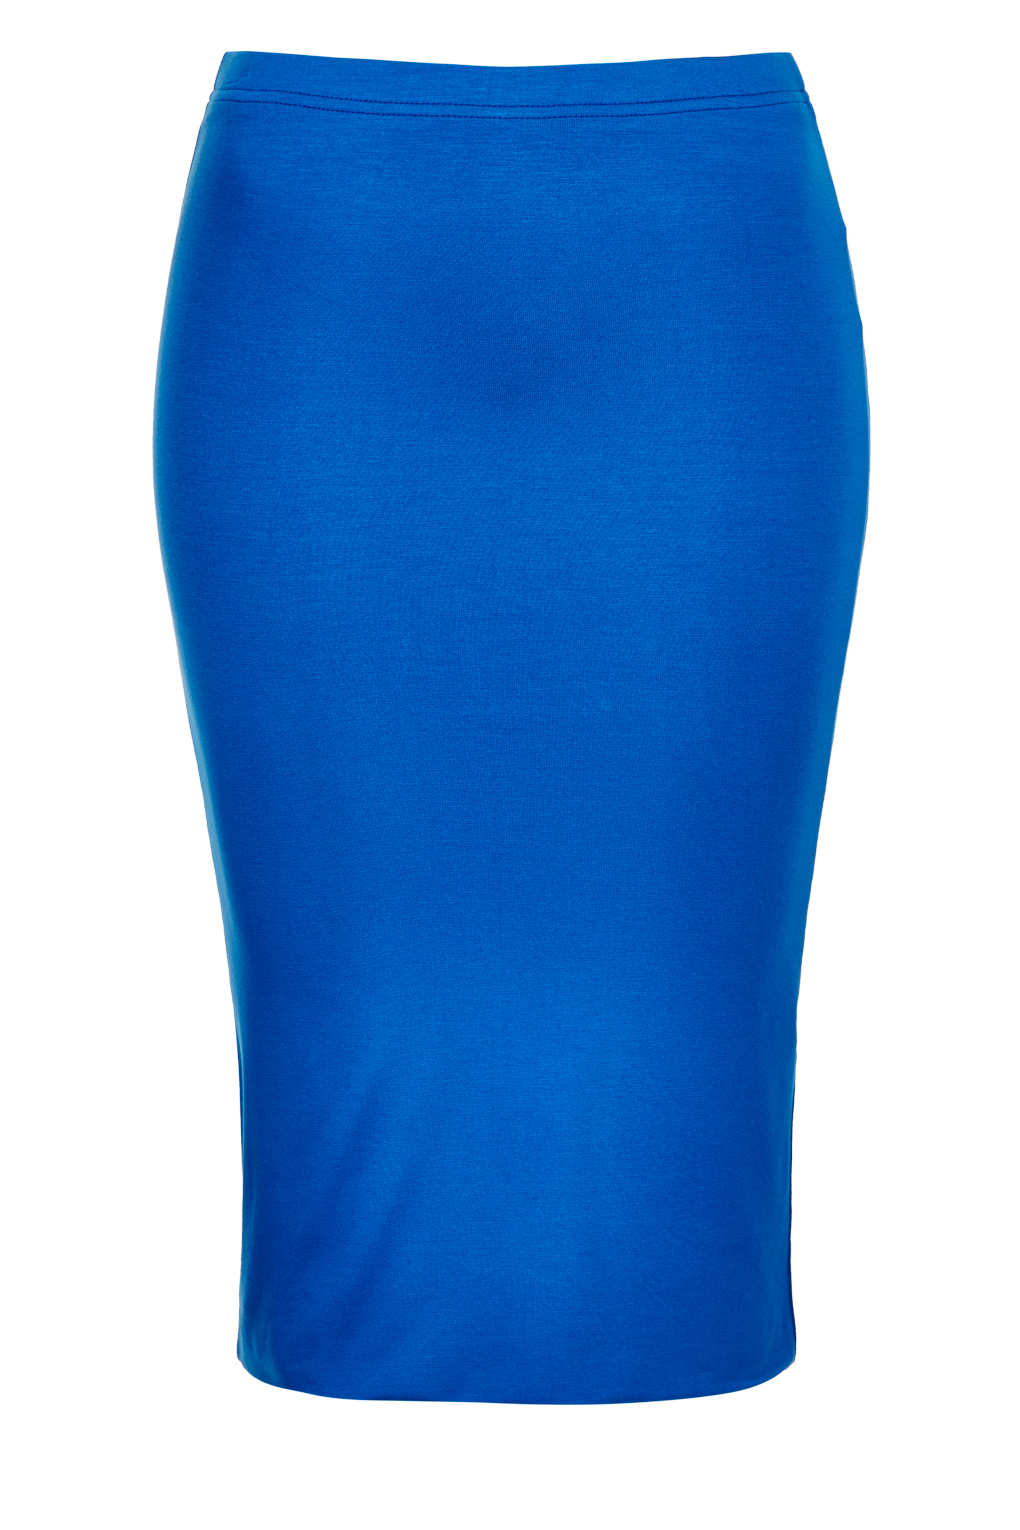 topshop layer skirt in blue bright